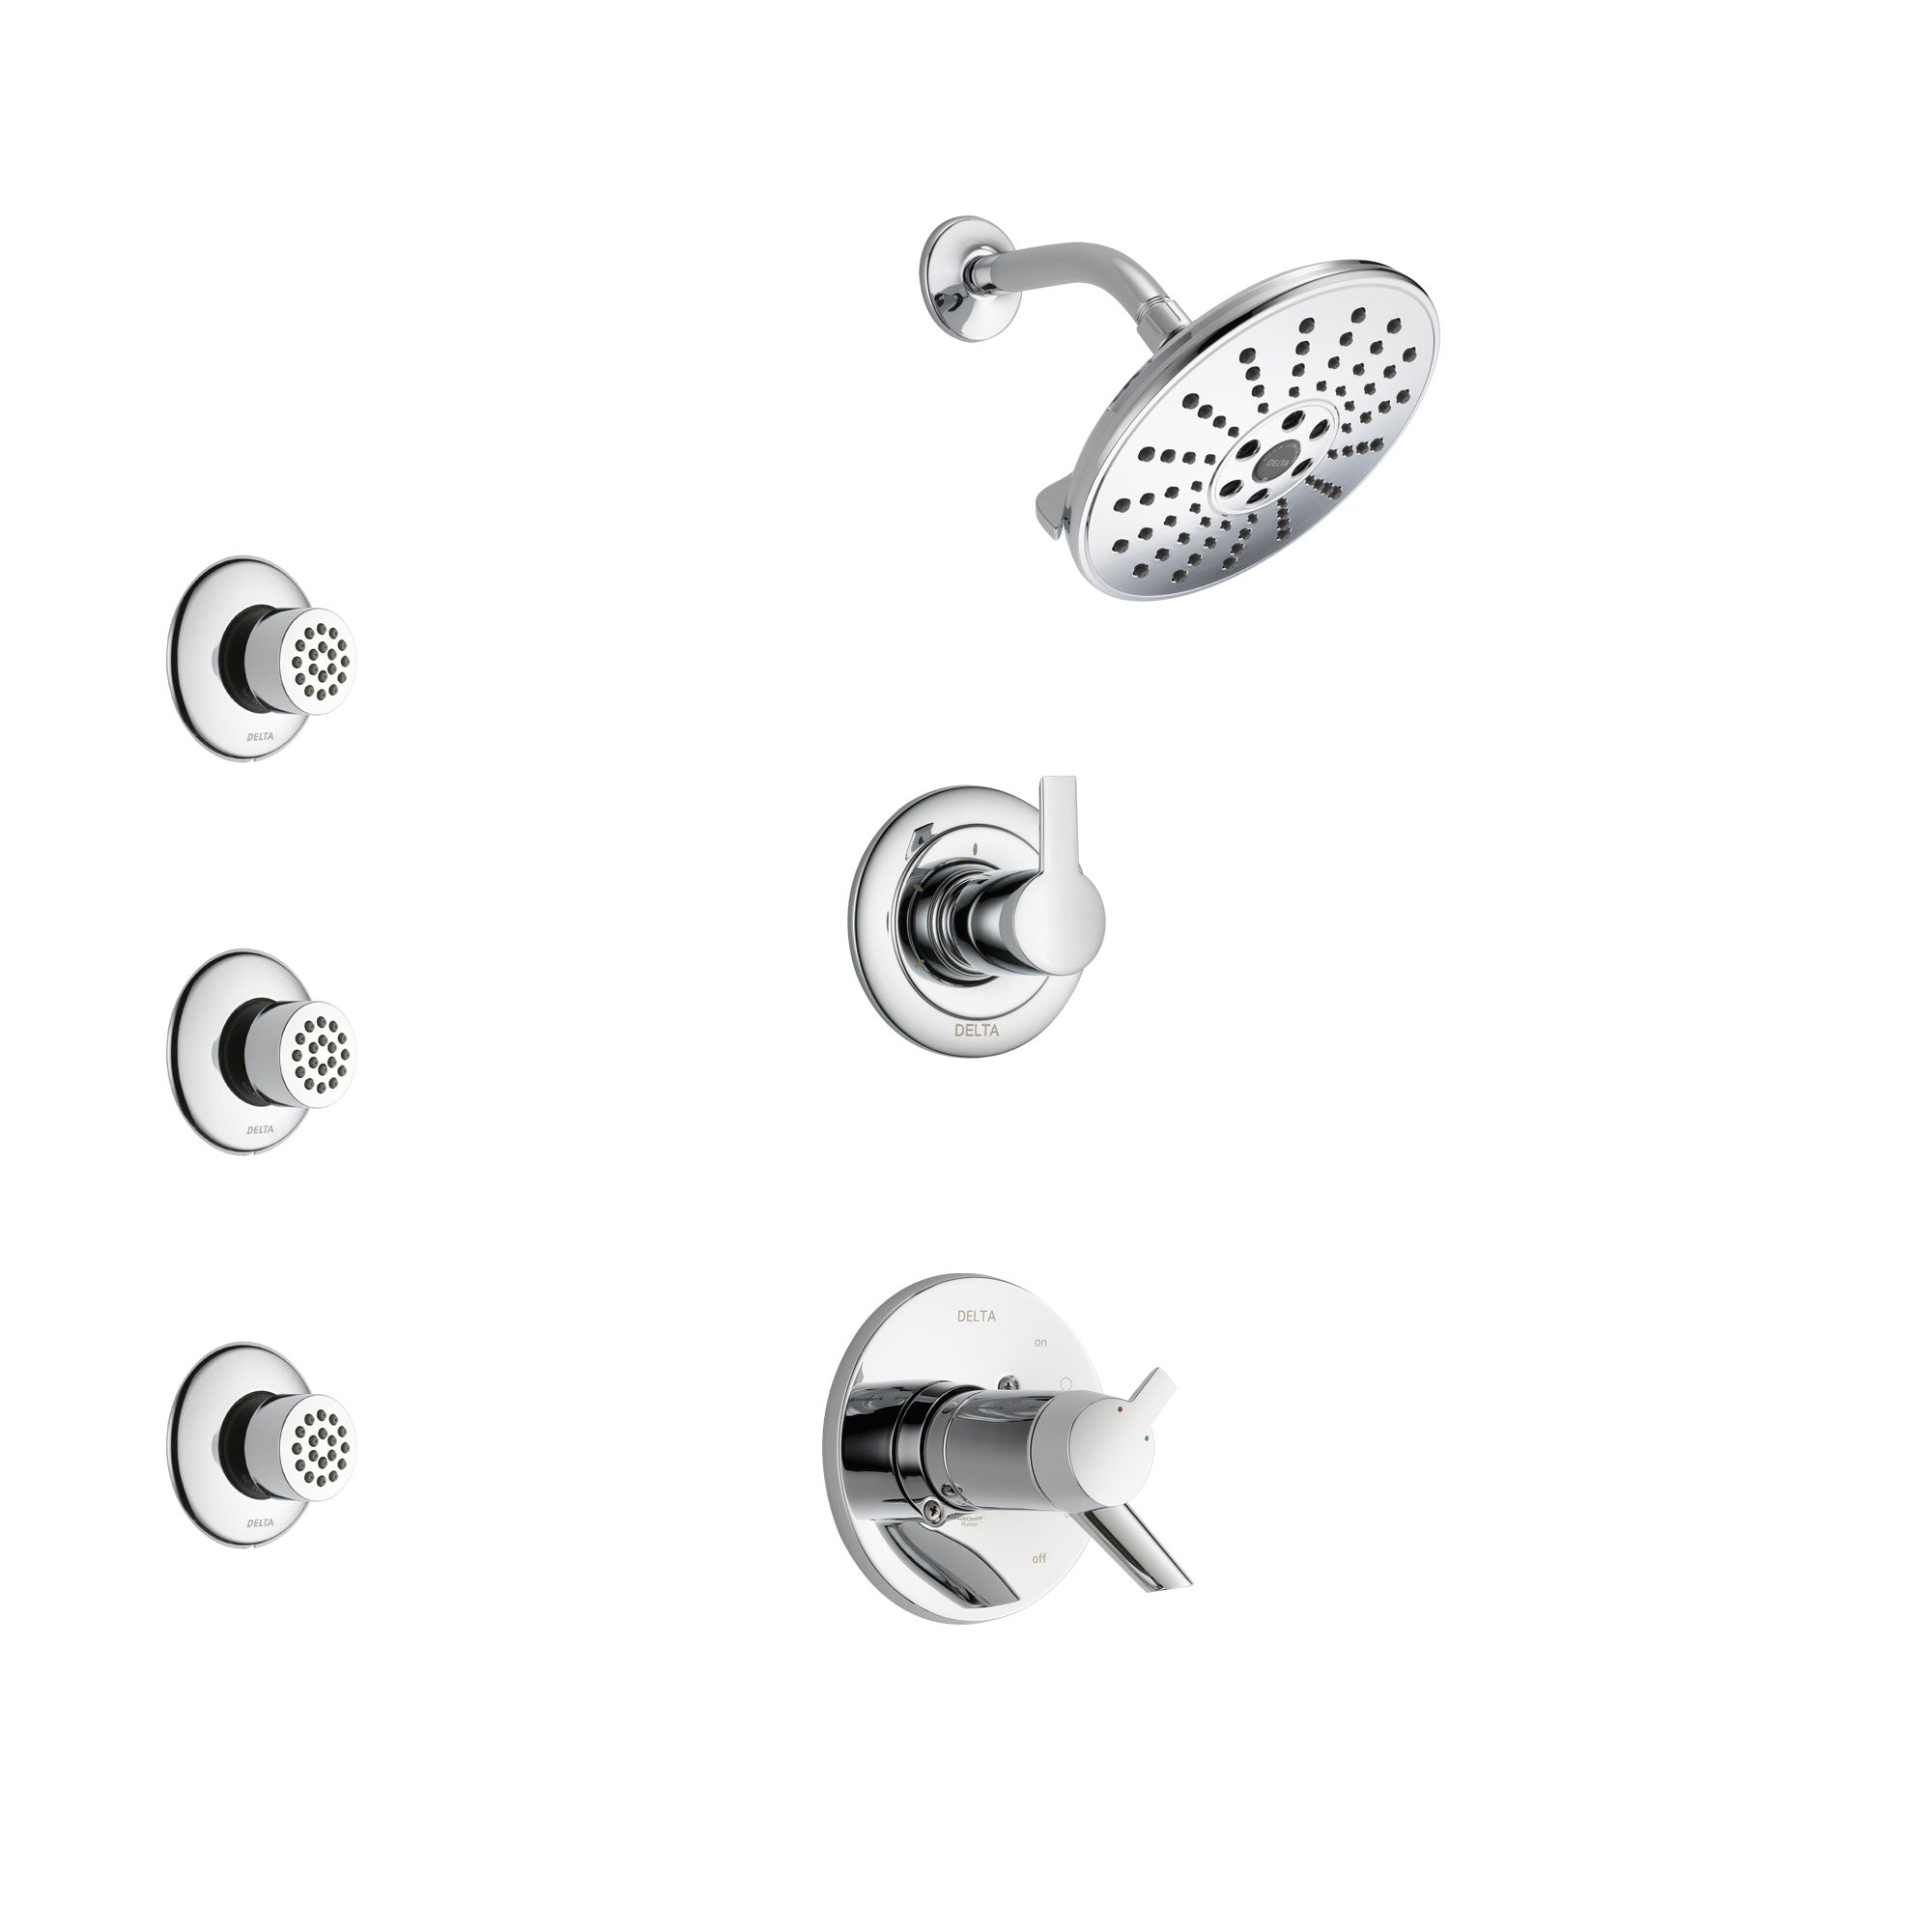 Delta Compel Chrome Finish Shower System with Dual Thermostatic Control Handle, 3-Setting Diverter, Showerhead, and 3 Body Sprays SS17T26111